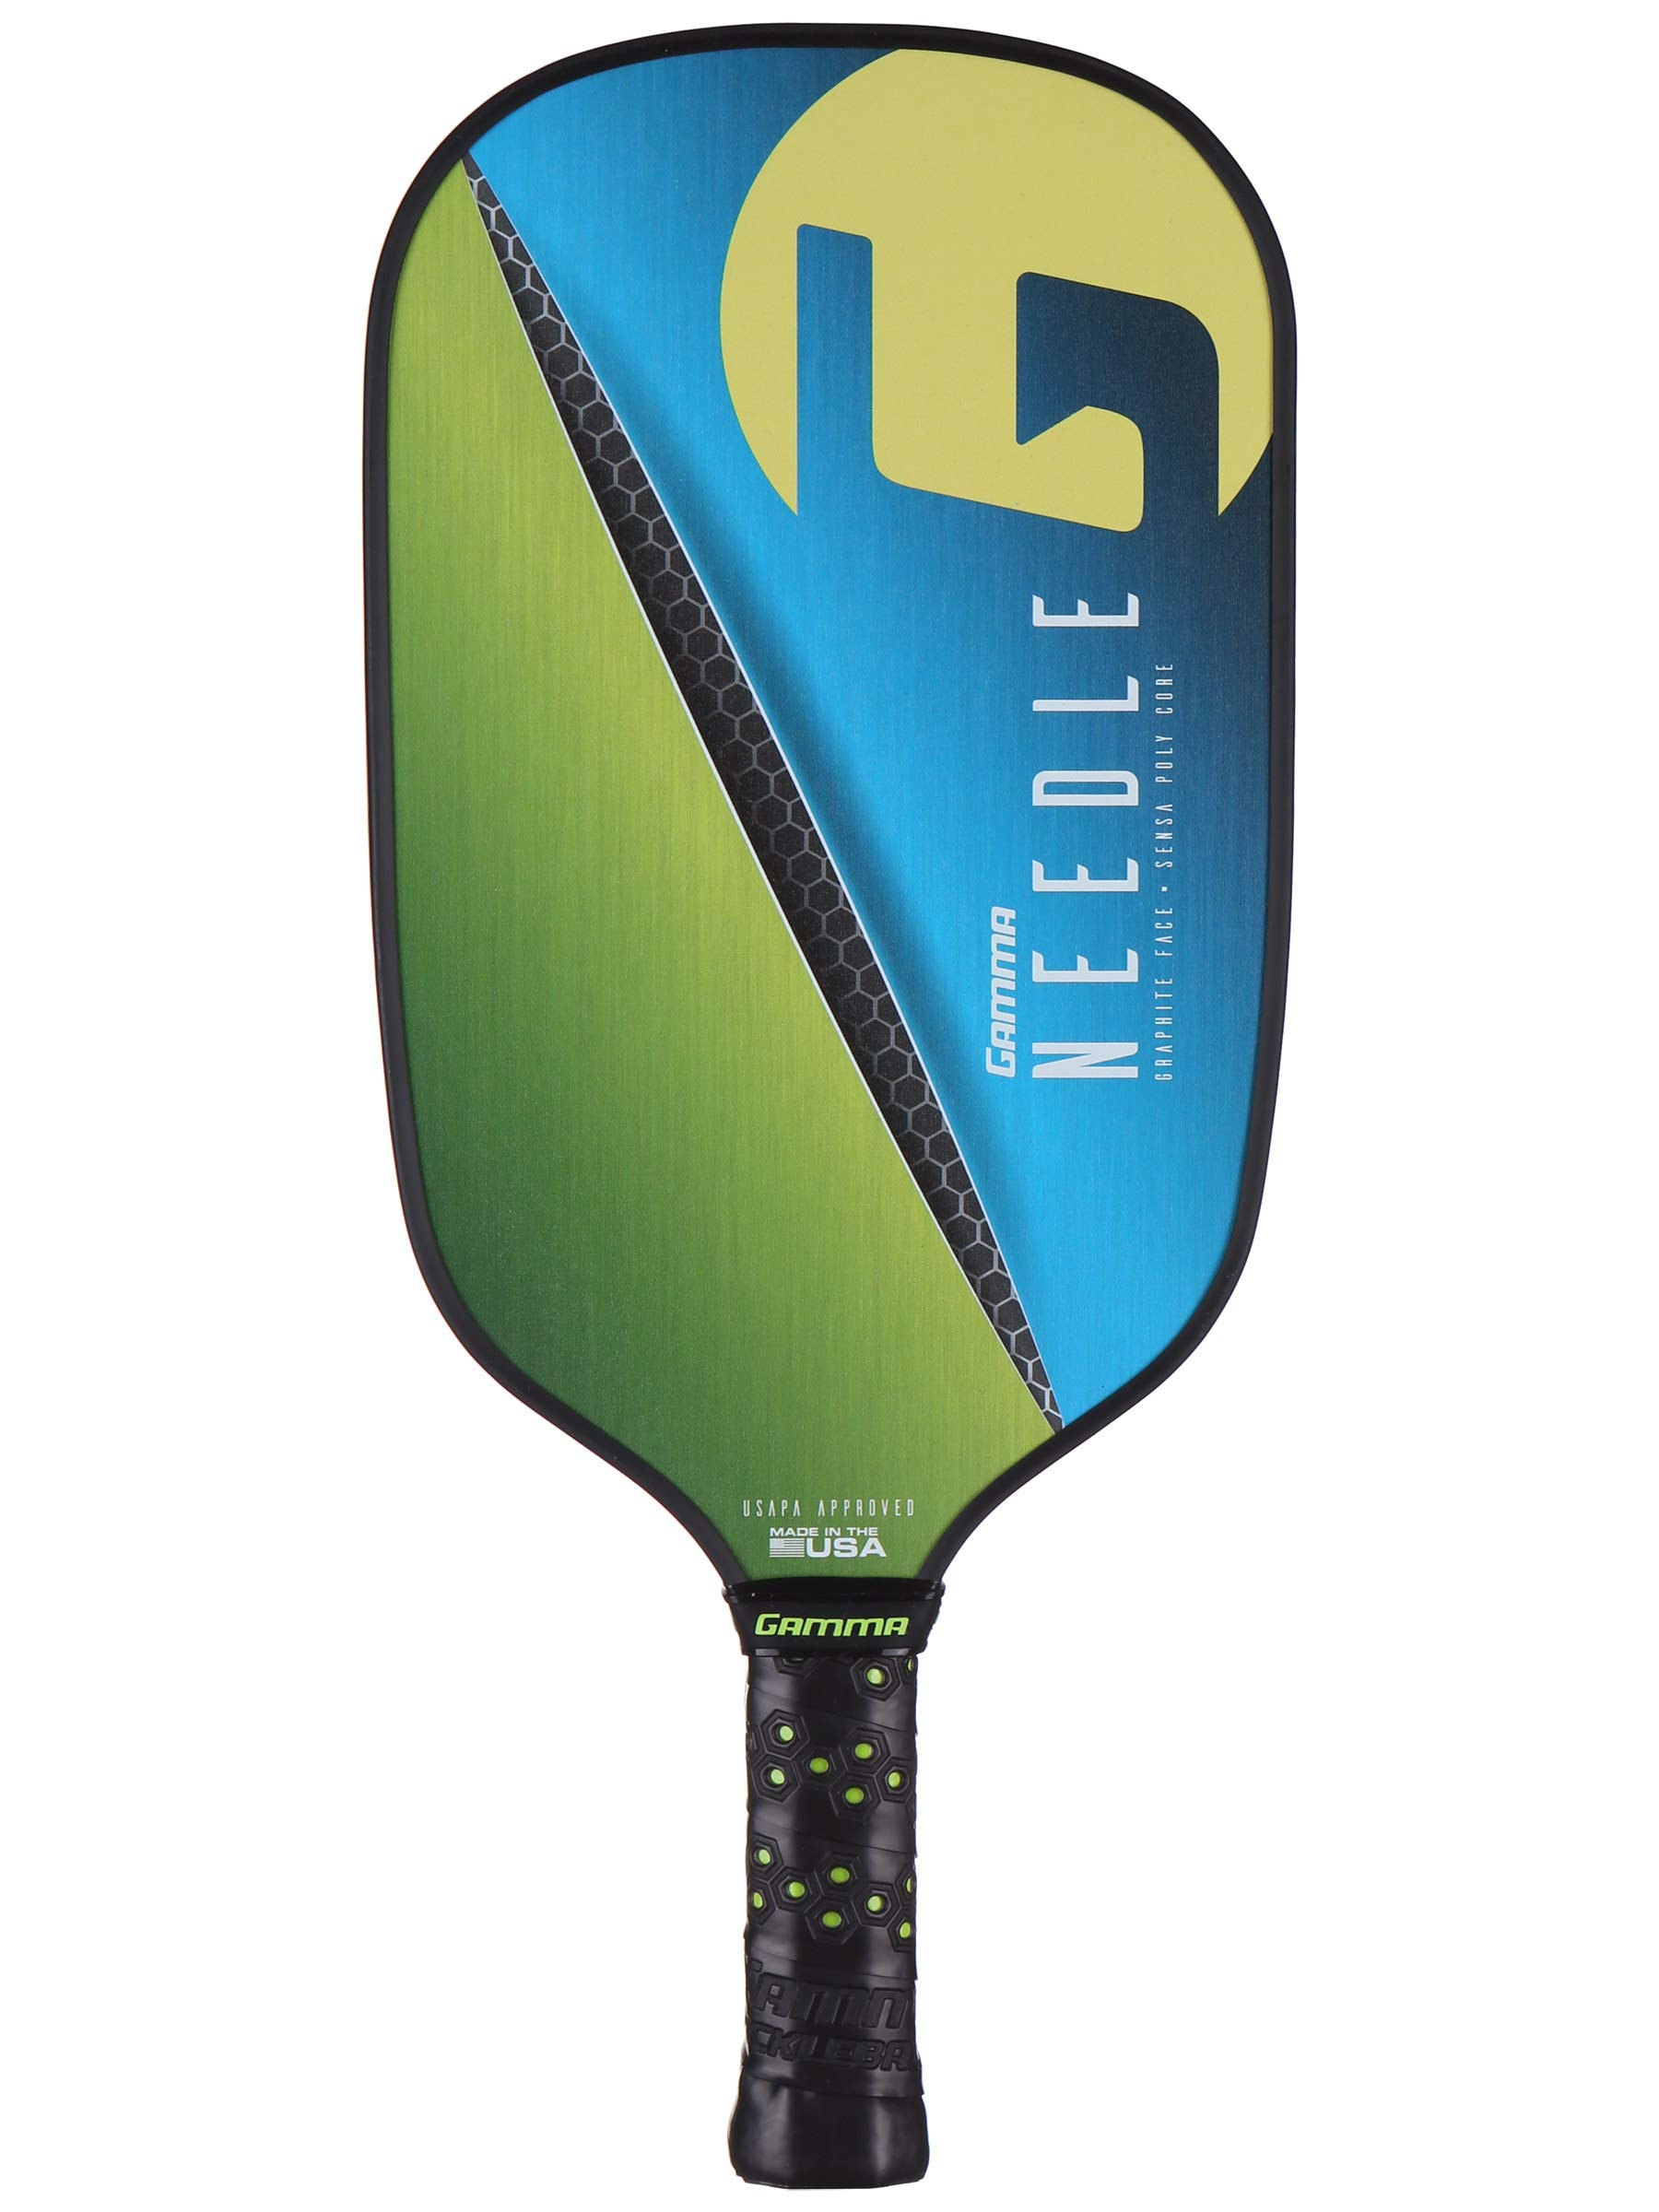 Gamma Needle Elongated Pickleball Paddle: Pickle Ball Paddles for Indoor & Outdoor Play - USAPA Approved Racquet for Adults & Kids - Pink/Blue by Gamma (Image #1)